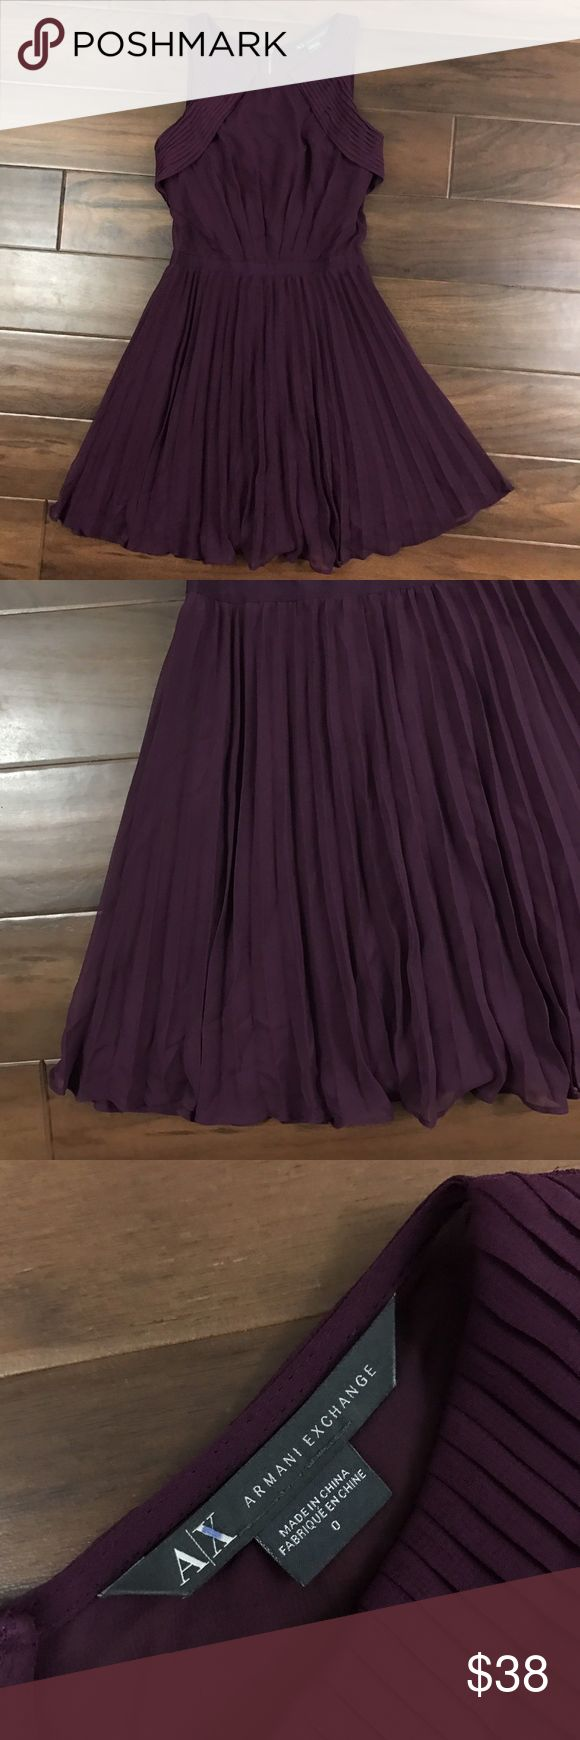 A/X Armani Exchange Size 0 Purple Pleated Dress A/X Armani Exchange Size 0 Plum Purple Sleeveless Accordion Pleating Dress, Lined, Pleating on Front, Exposed Back Zipper, No Stretch, Sheer Sides and Back Gently used with no noticed flaws Thanks for looking   :) A/X Armani Exchange Dresses Mini